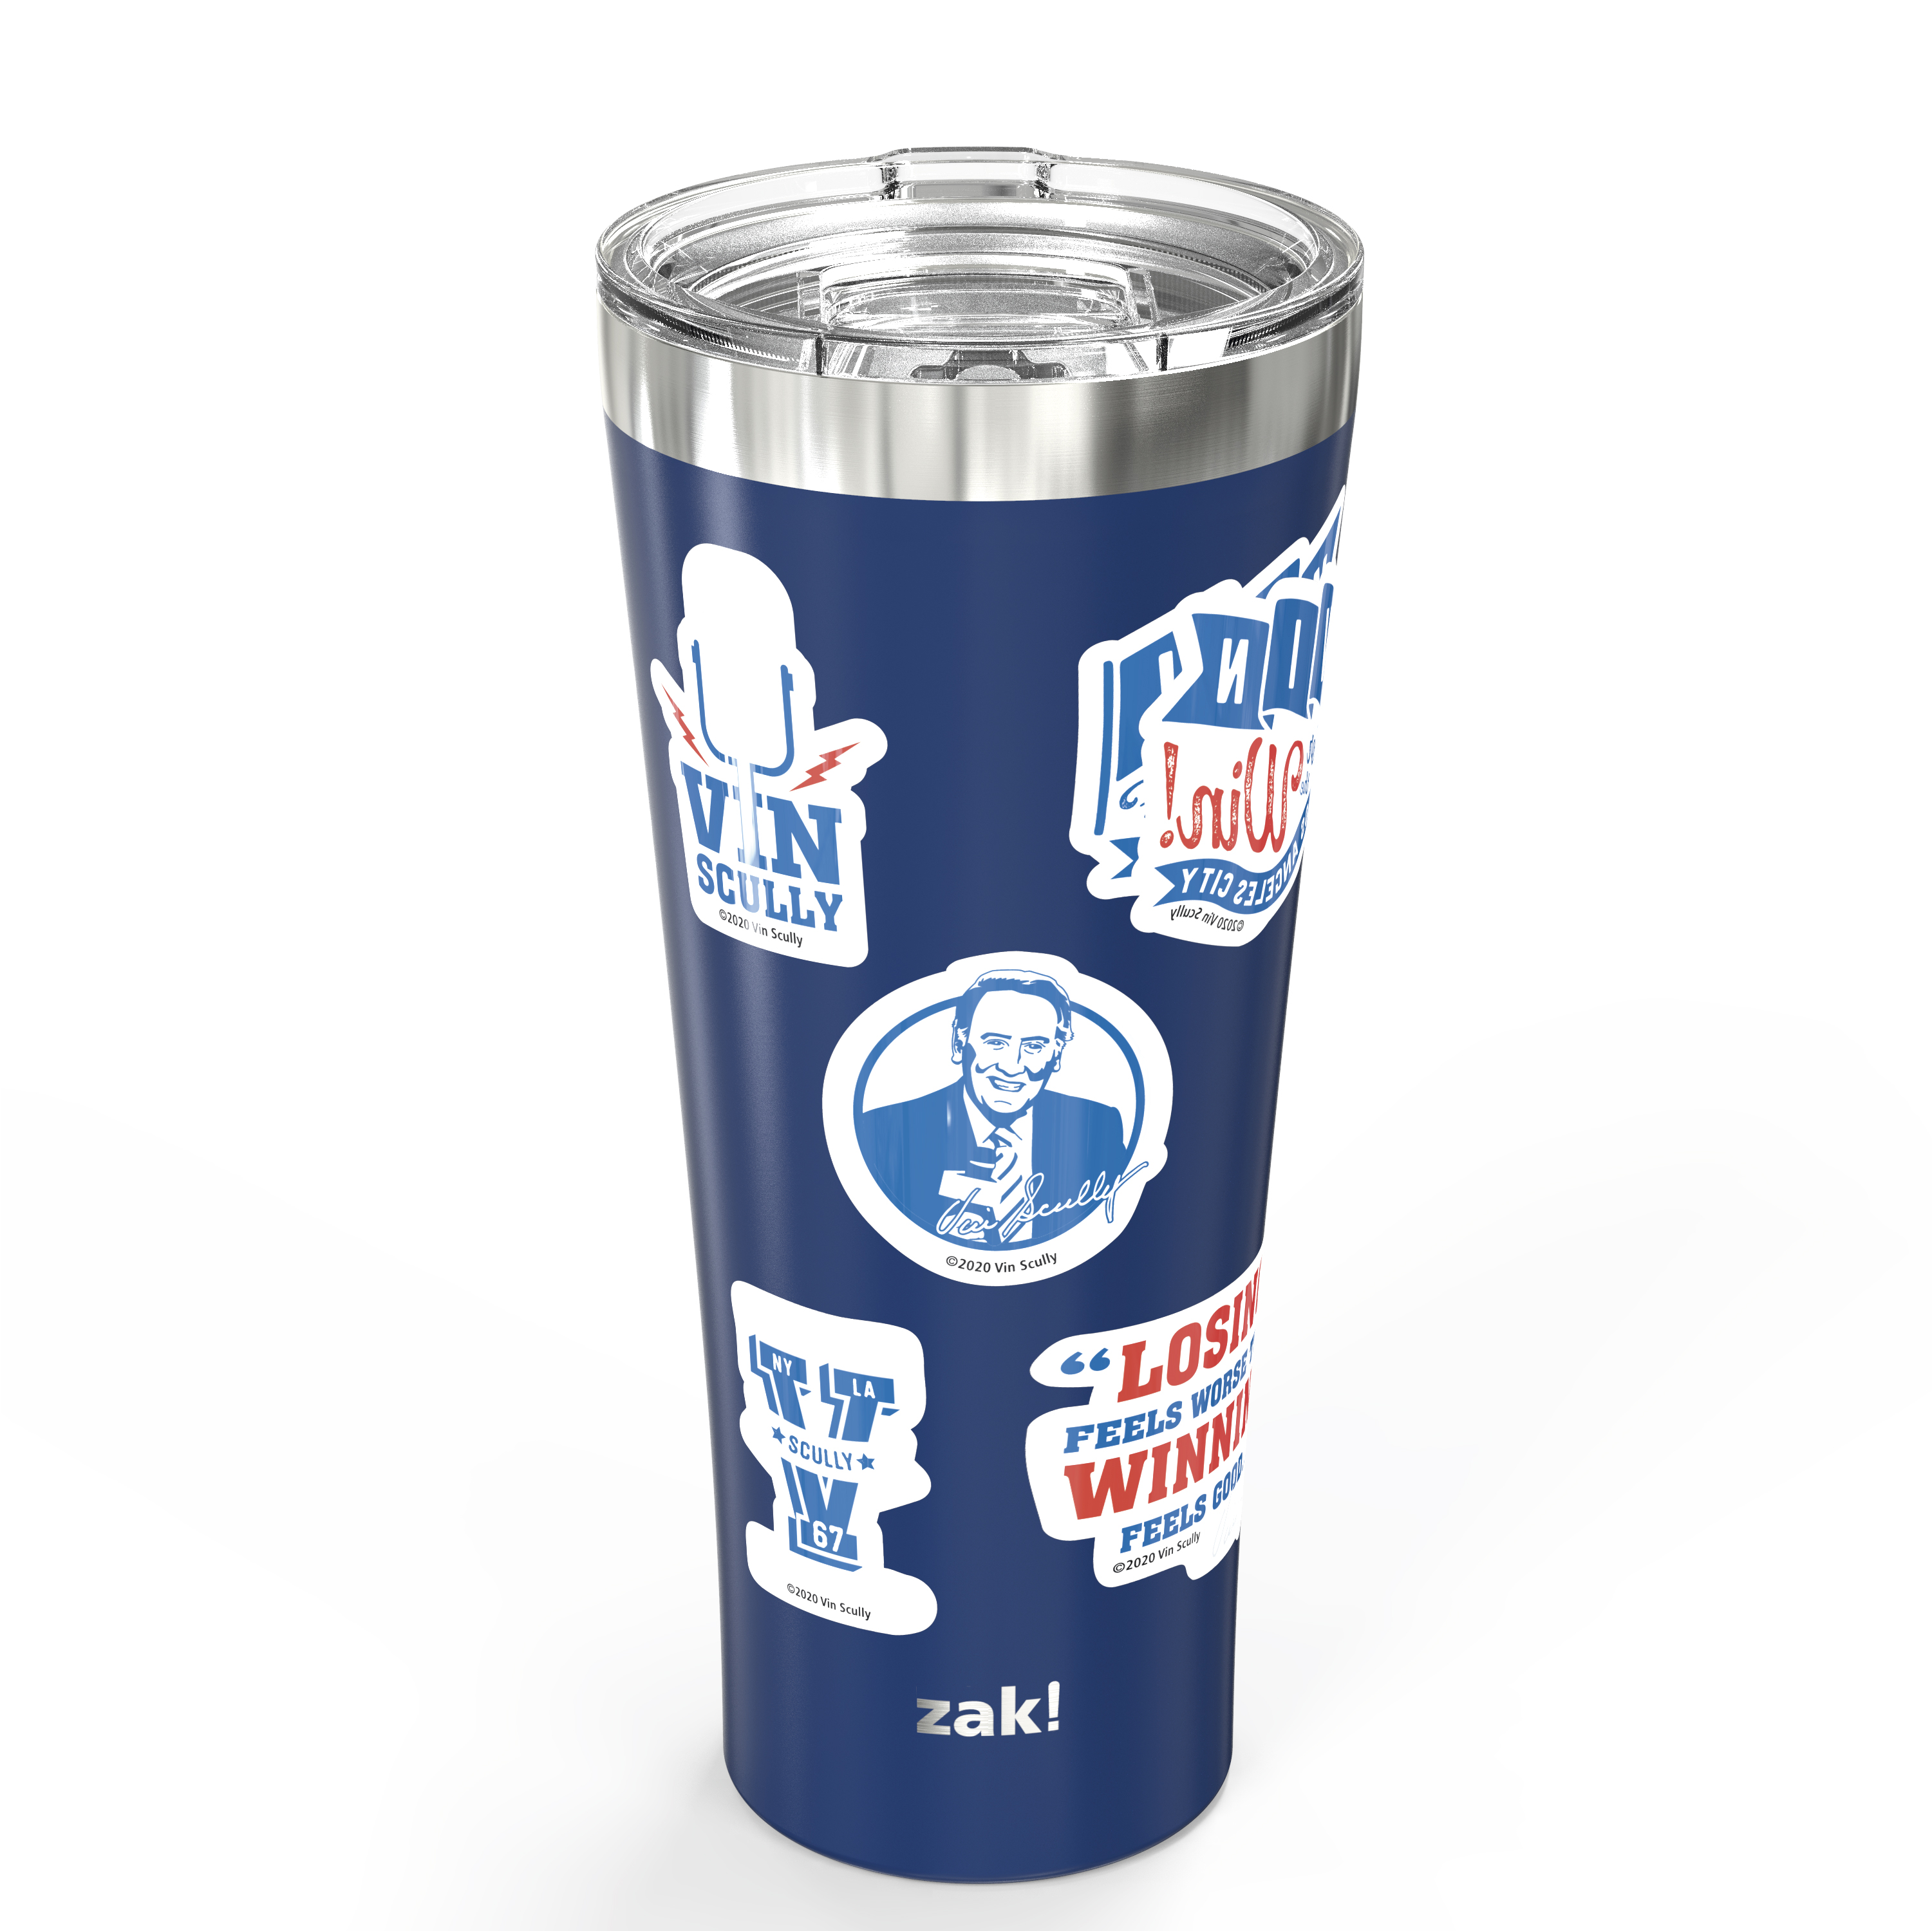 Zak Hydration 30 ounce Vacuum Insulated Stainless Steel Tumbler, Vin Scully, 2-piece set slideshow image 4